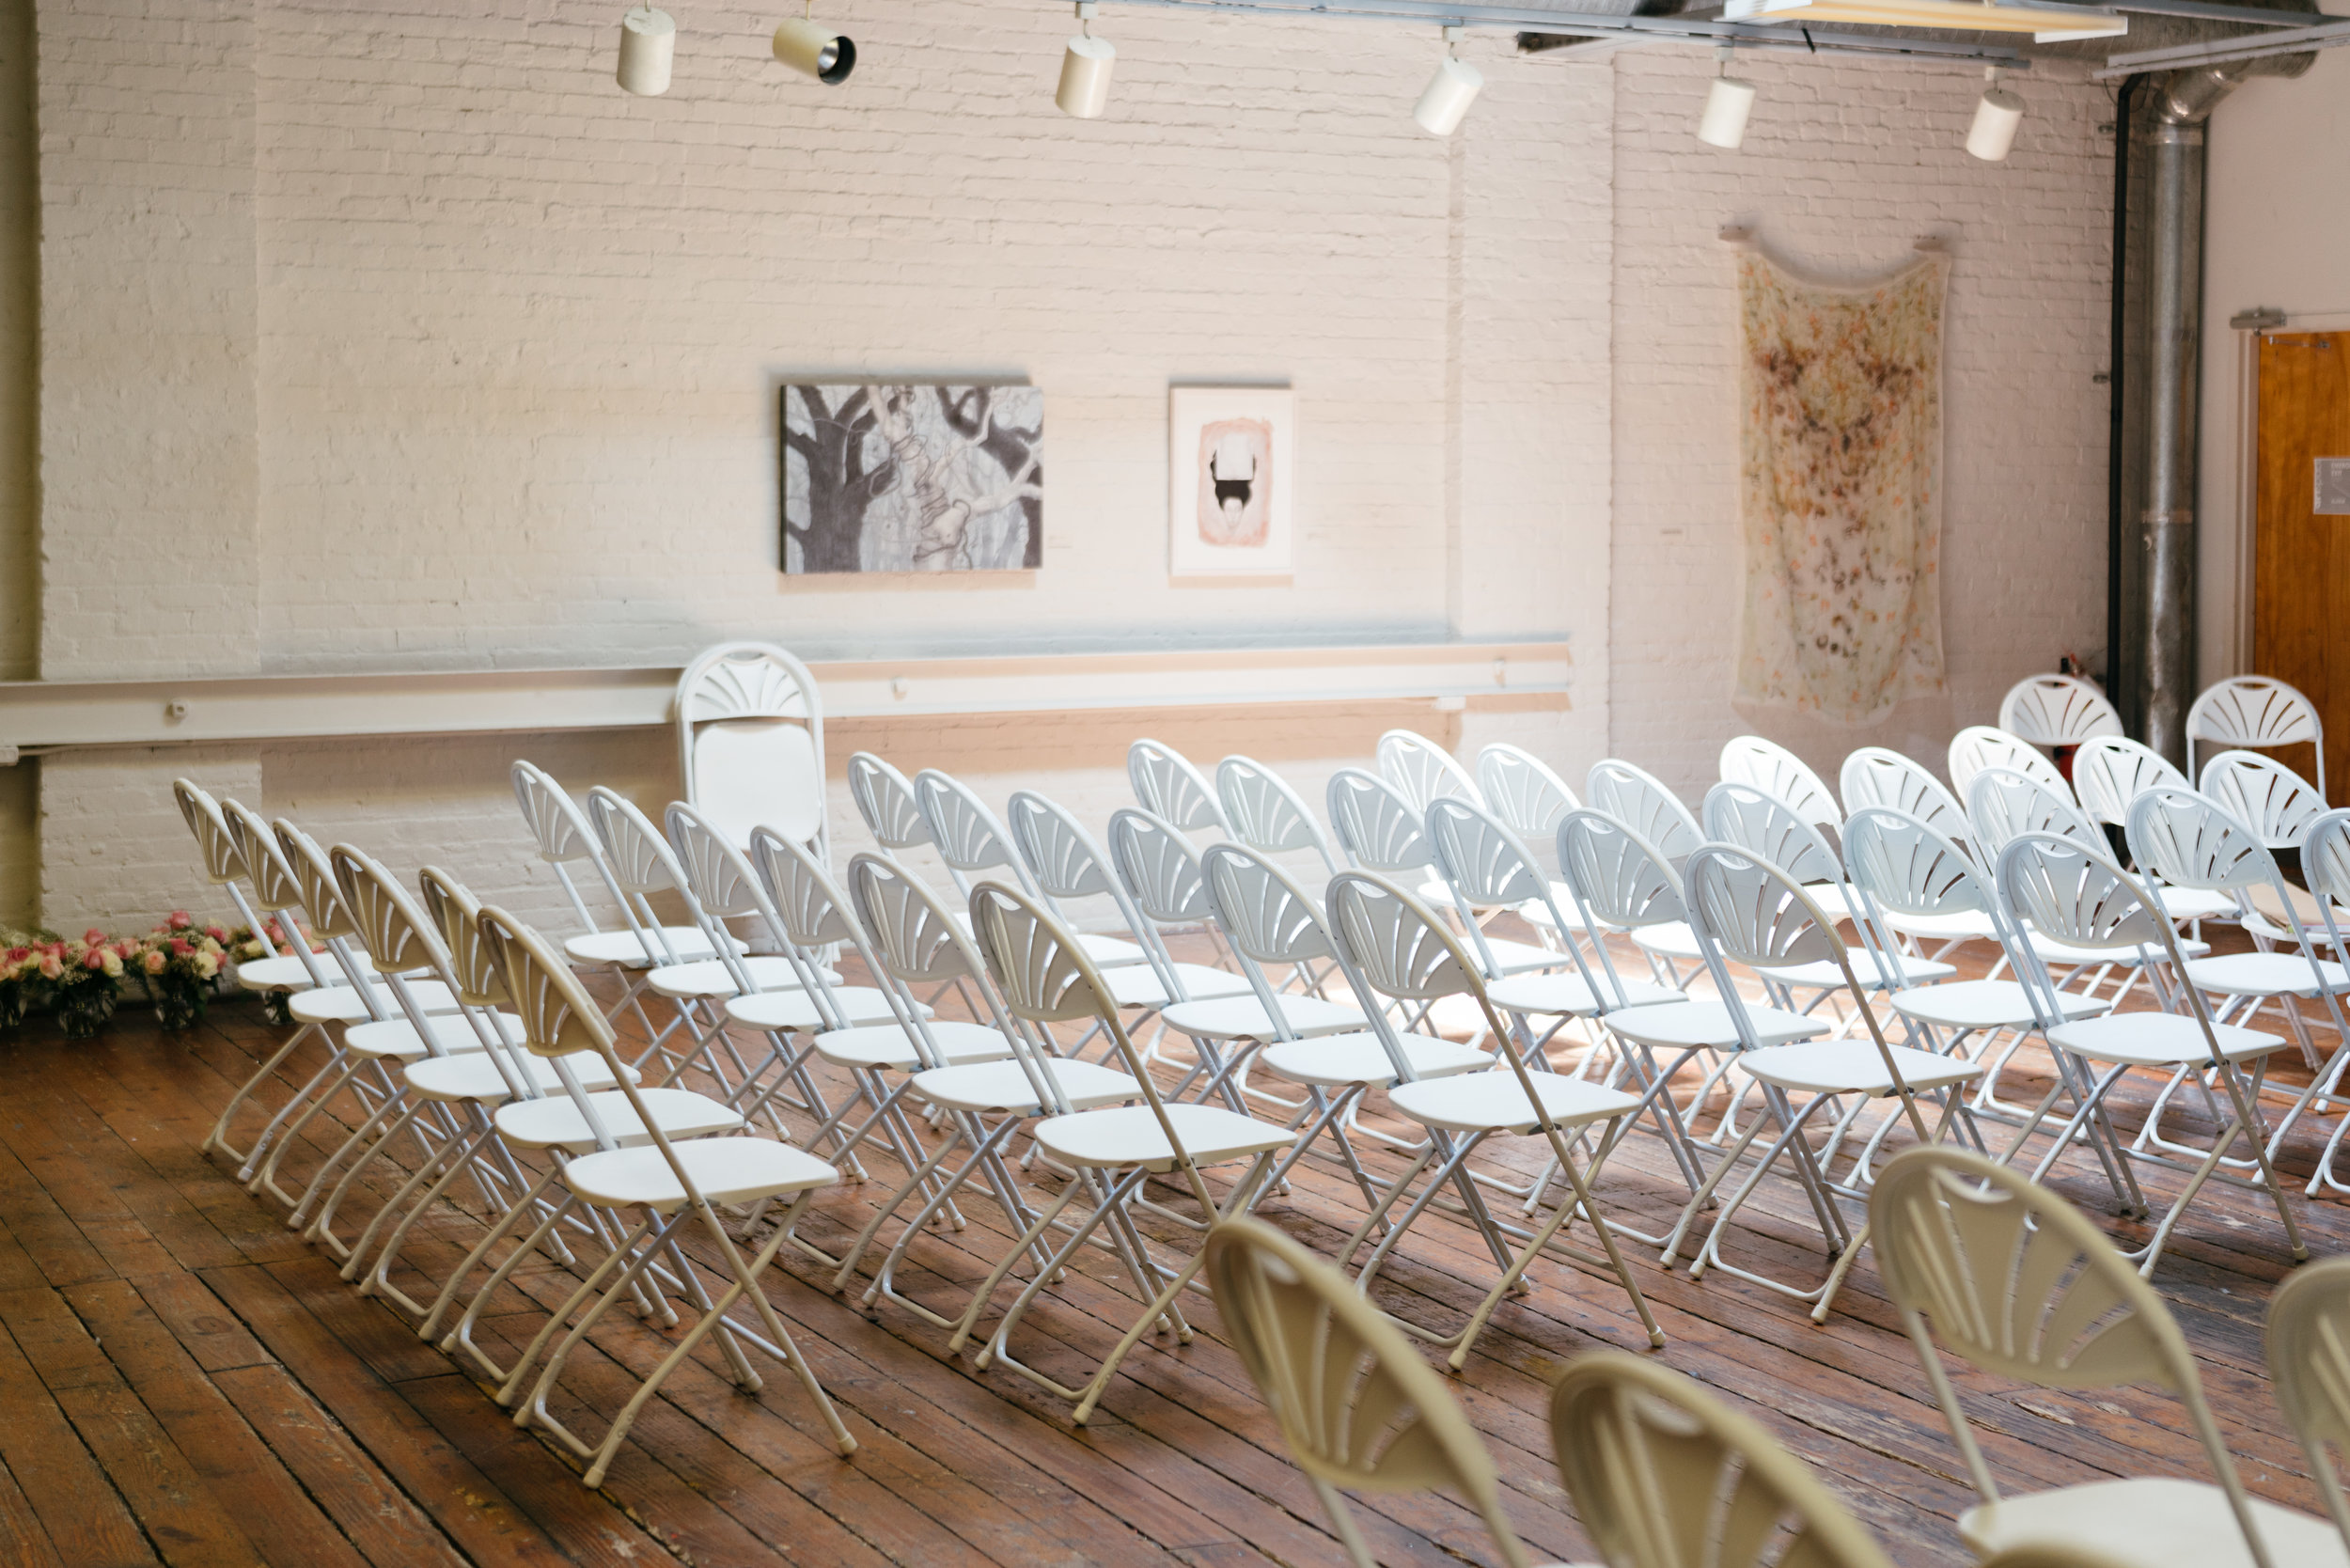 We probably ended up having 80 guests at our wedding and had originally planned for about 120. It was truly more than enough room for all! While I would've chose different chairs I actually l loved these because they were white, clean, and practical while flipping the space (Gallery 2) from the ceremony to the reception.